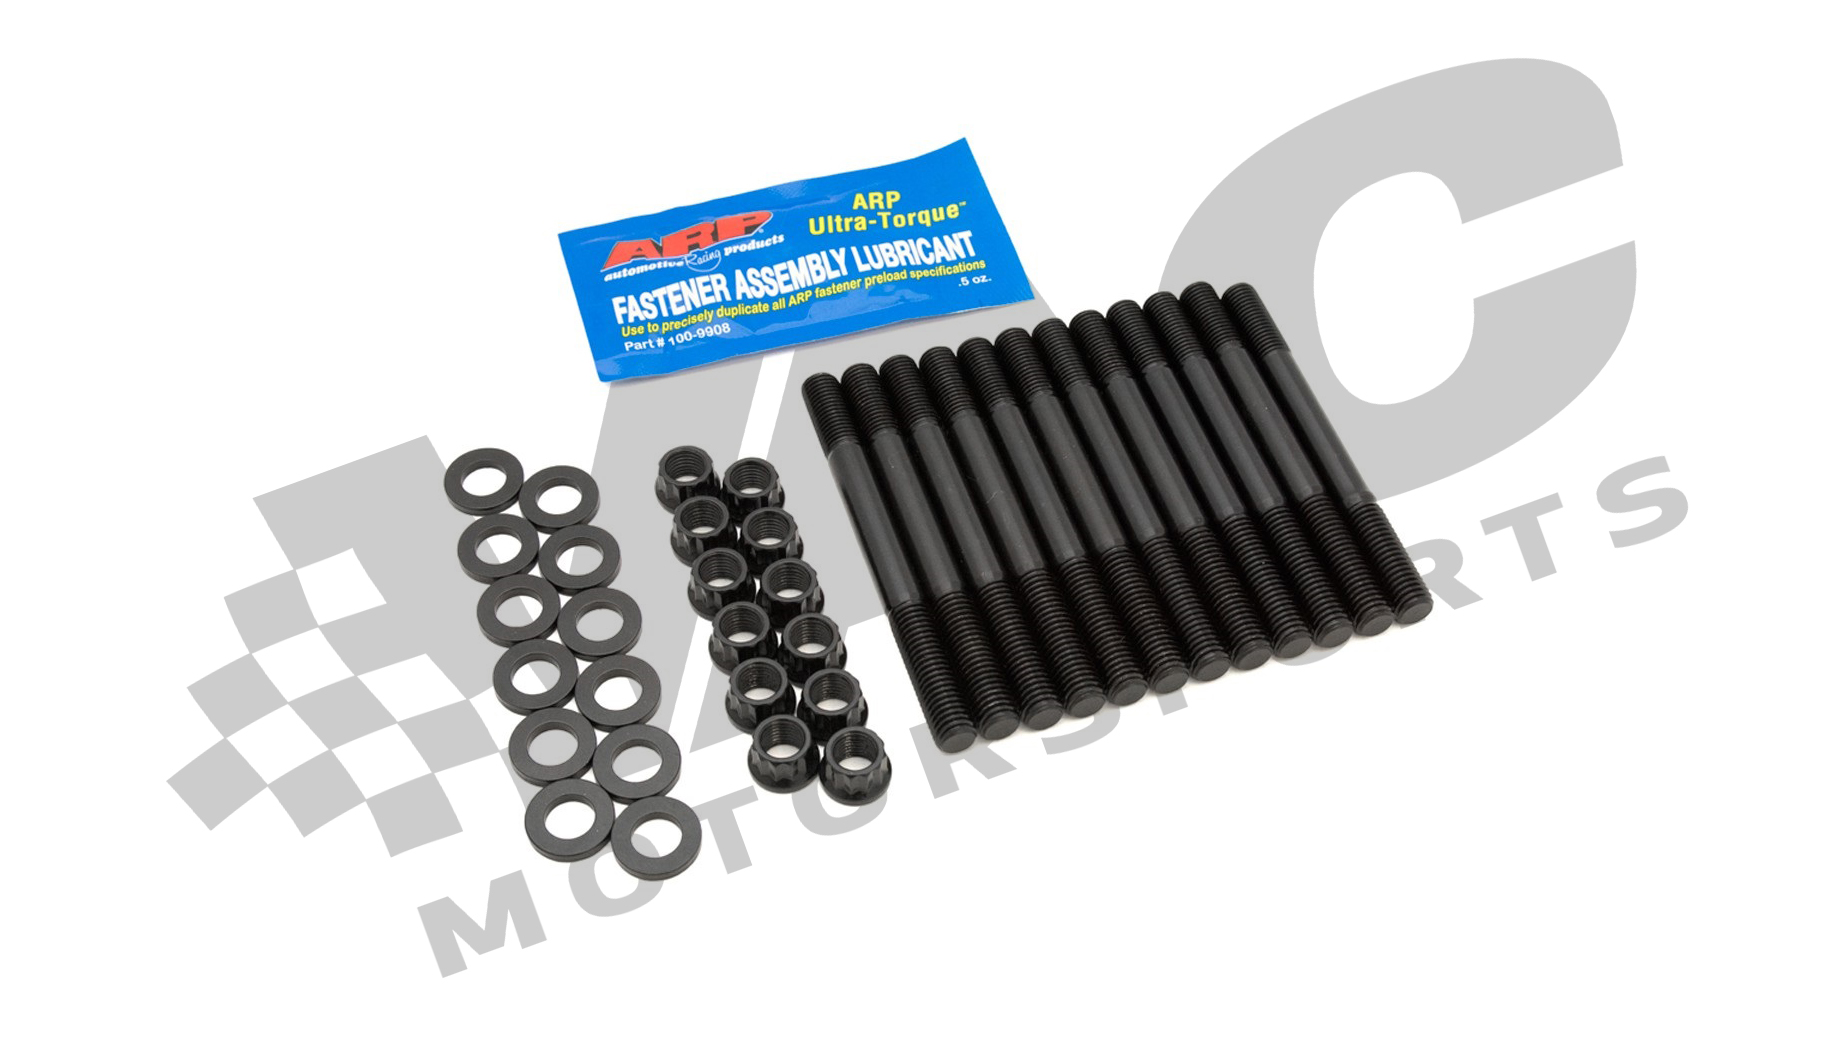 ARP Main Stud Kits for BMW THUMBNAIL